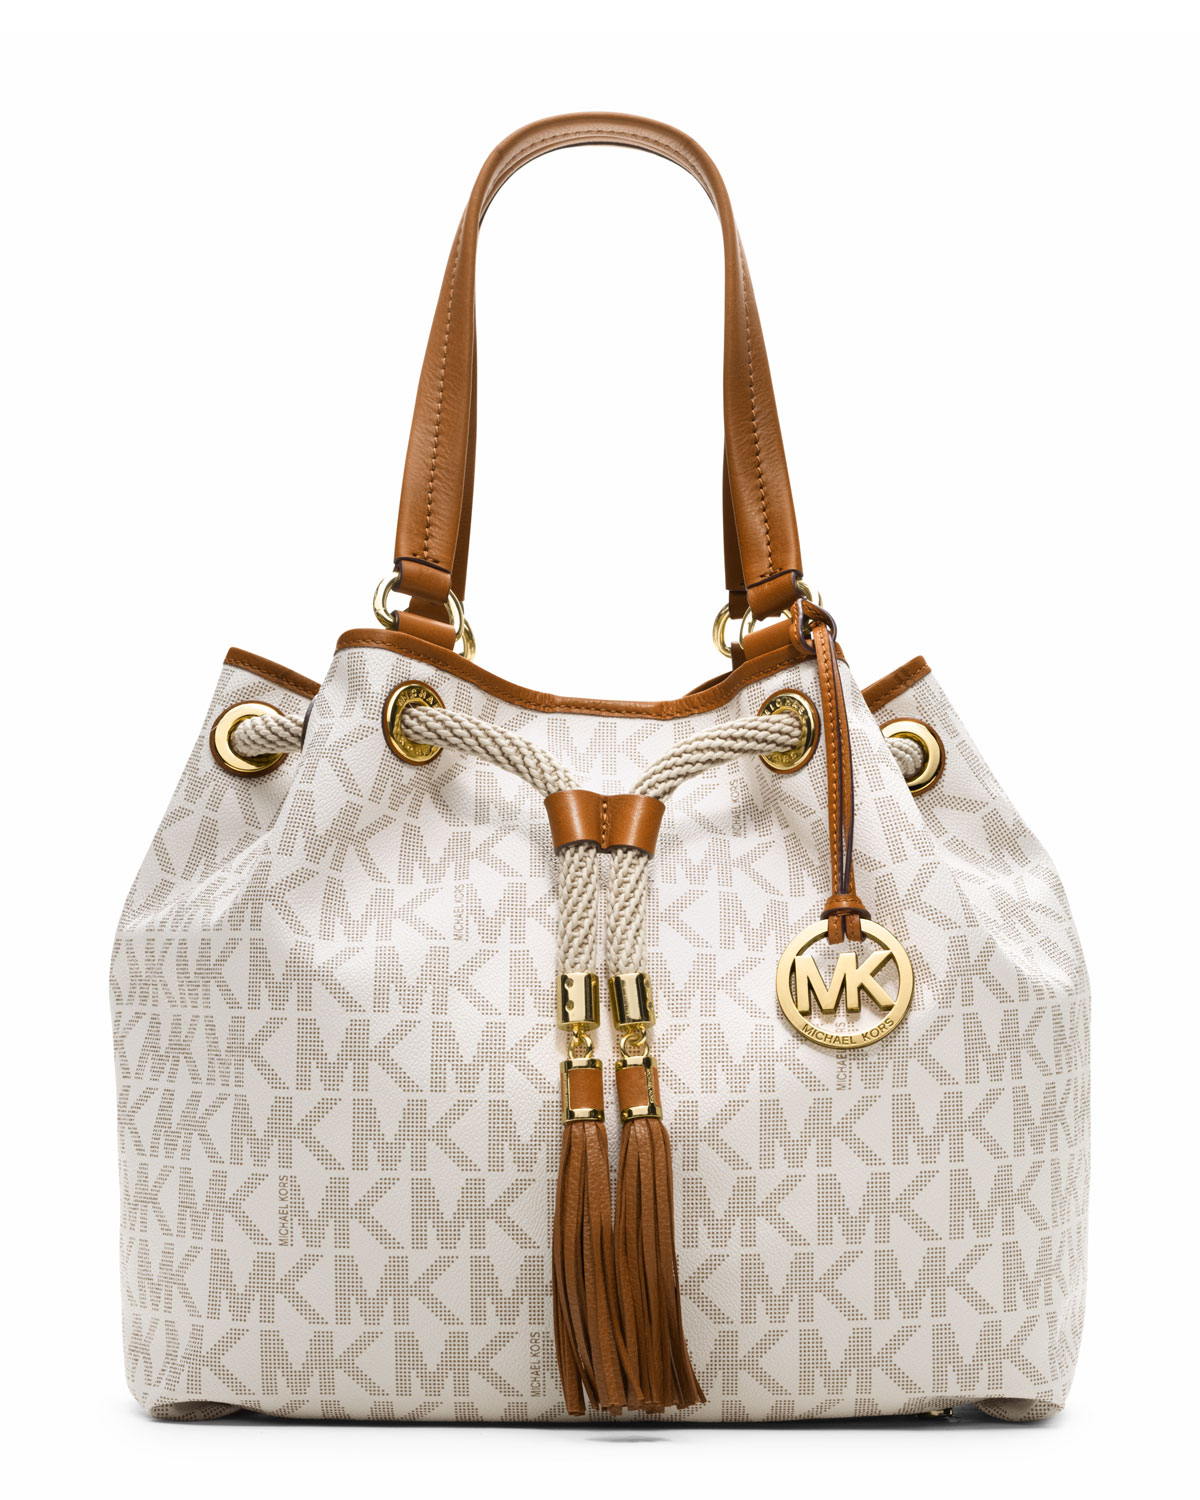 Discount Michael Kors Bags Factory Outlet Online Michael Kors bags are popular among the A-list celebrities. Michael Kors Outlet is a cutting-edge fashion designer who is specializing in luxury goods such as accessories, jewelry and watches.